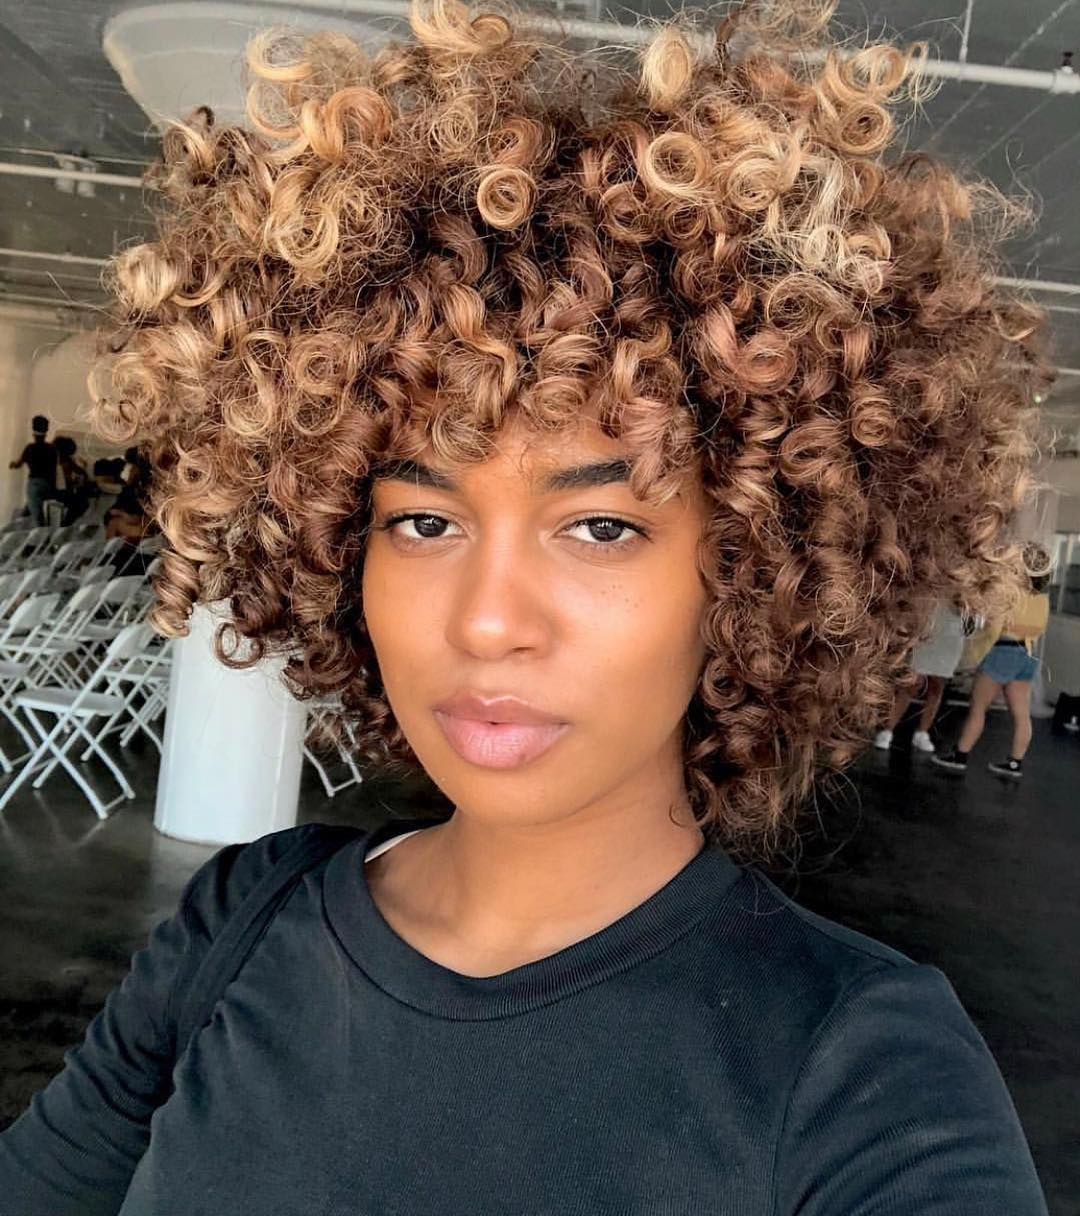 We Love This Subtle Blonde Color On Aixajahara Naturalhair Permrod Afro Coloredhair Natural Hair Styles Curly Hair Styles Frontal Wig Hairstyles